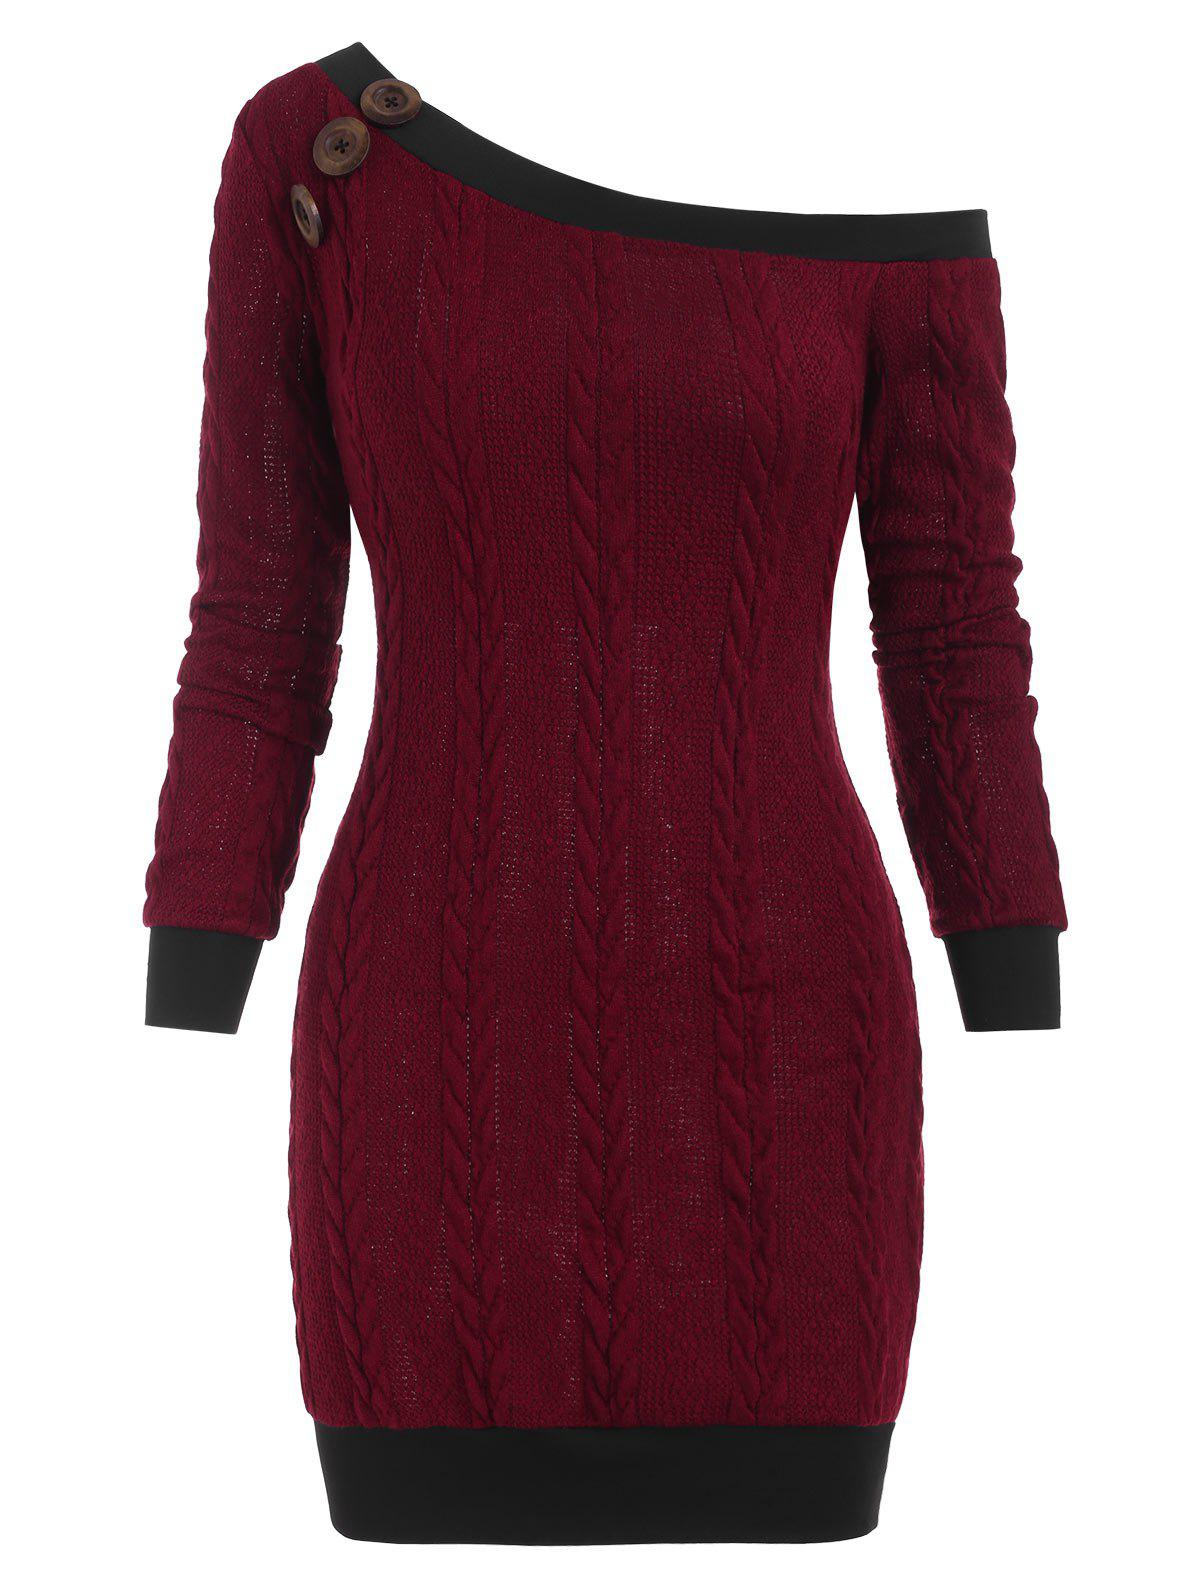 Skew Neck Cable Knit Mini Sweater Dress - DEEP RED 3XL